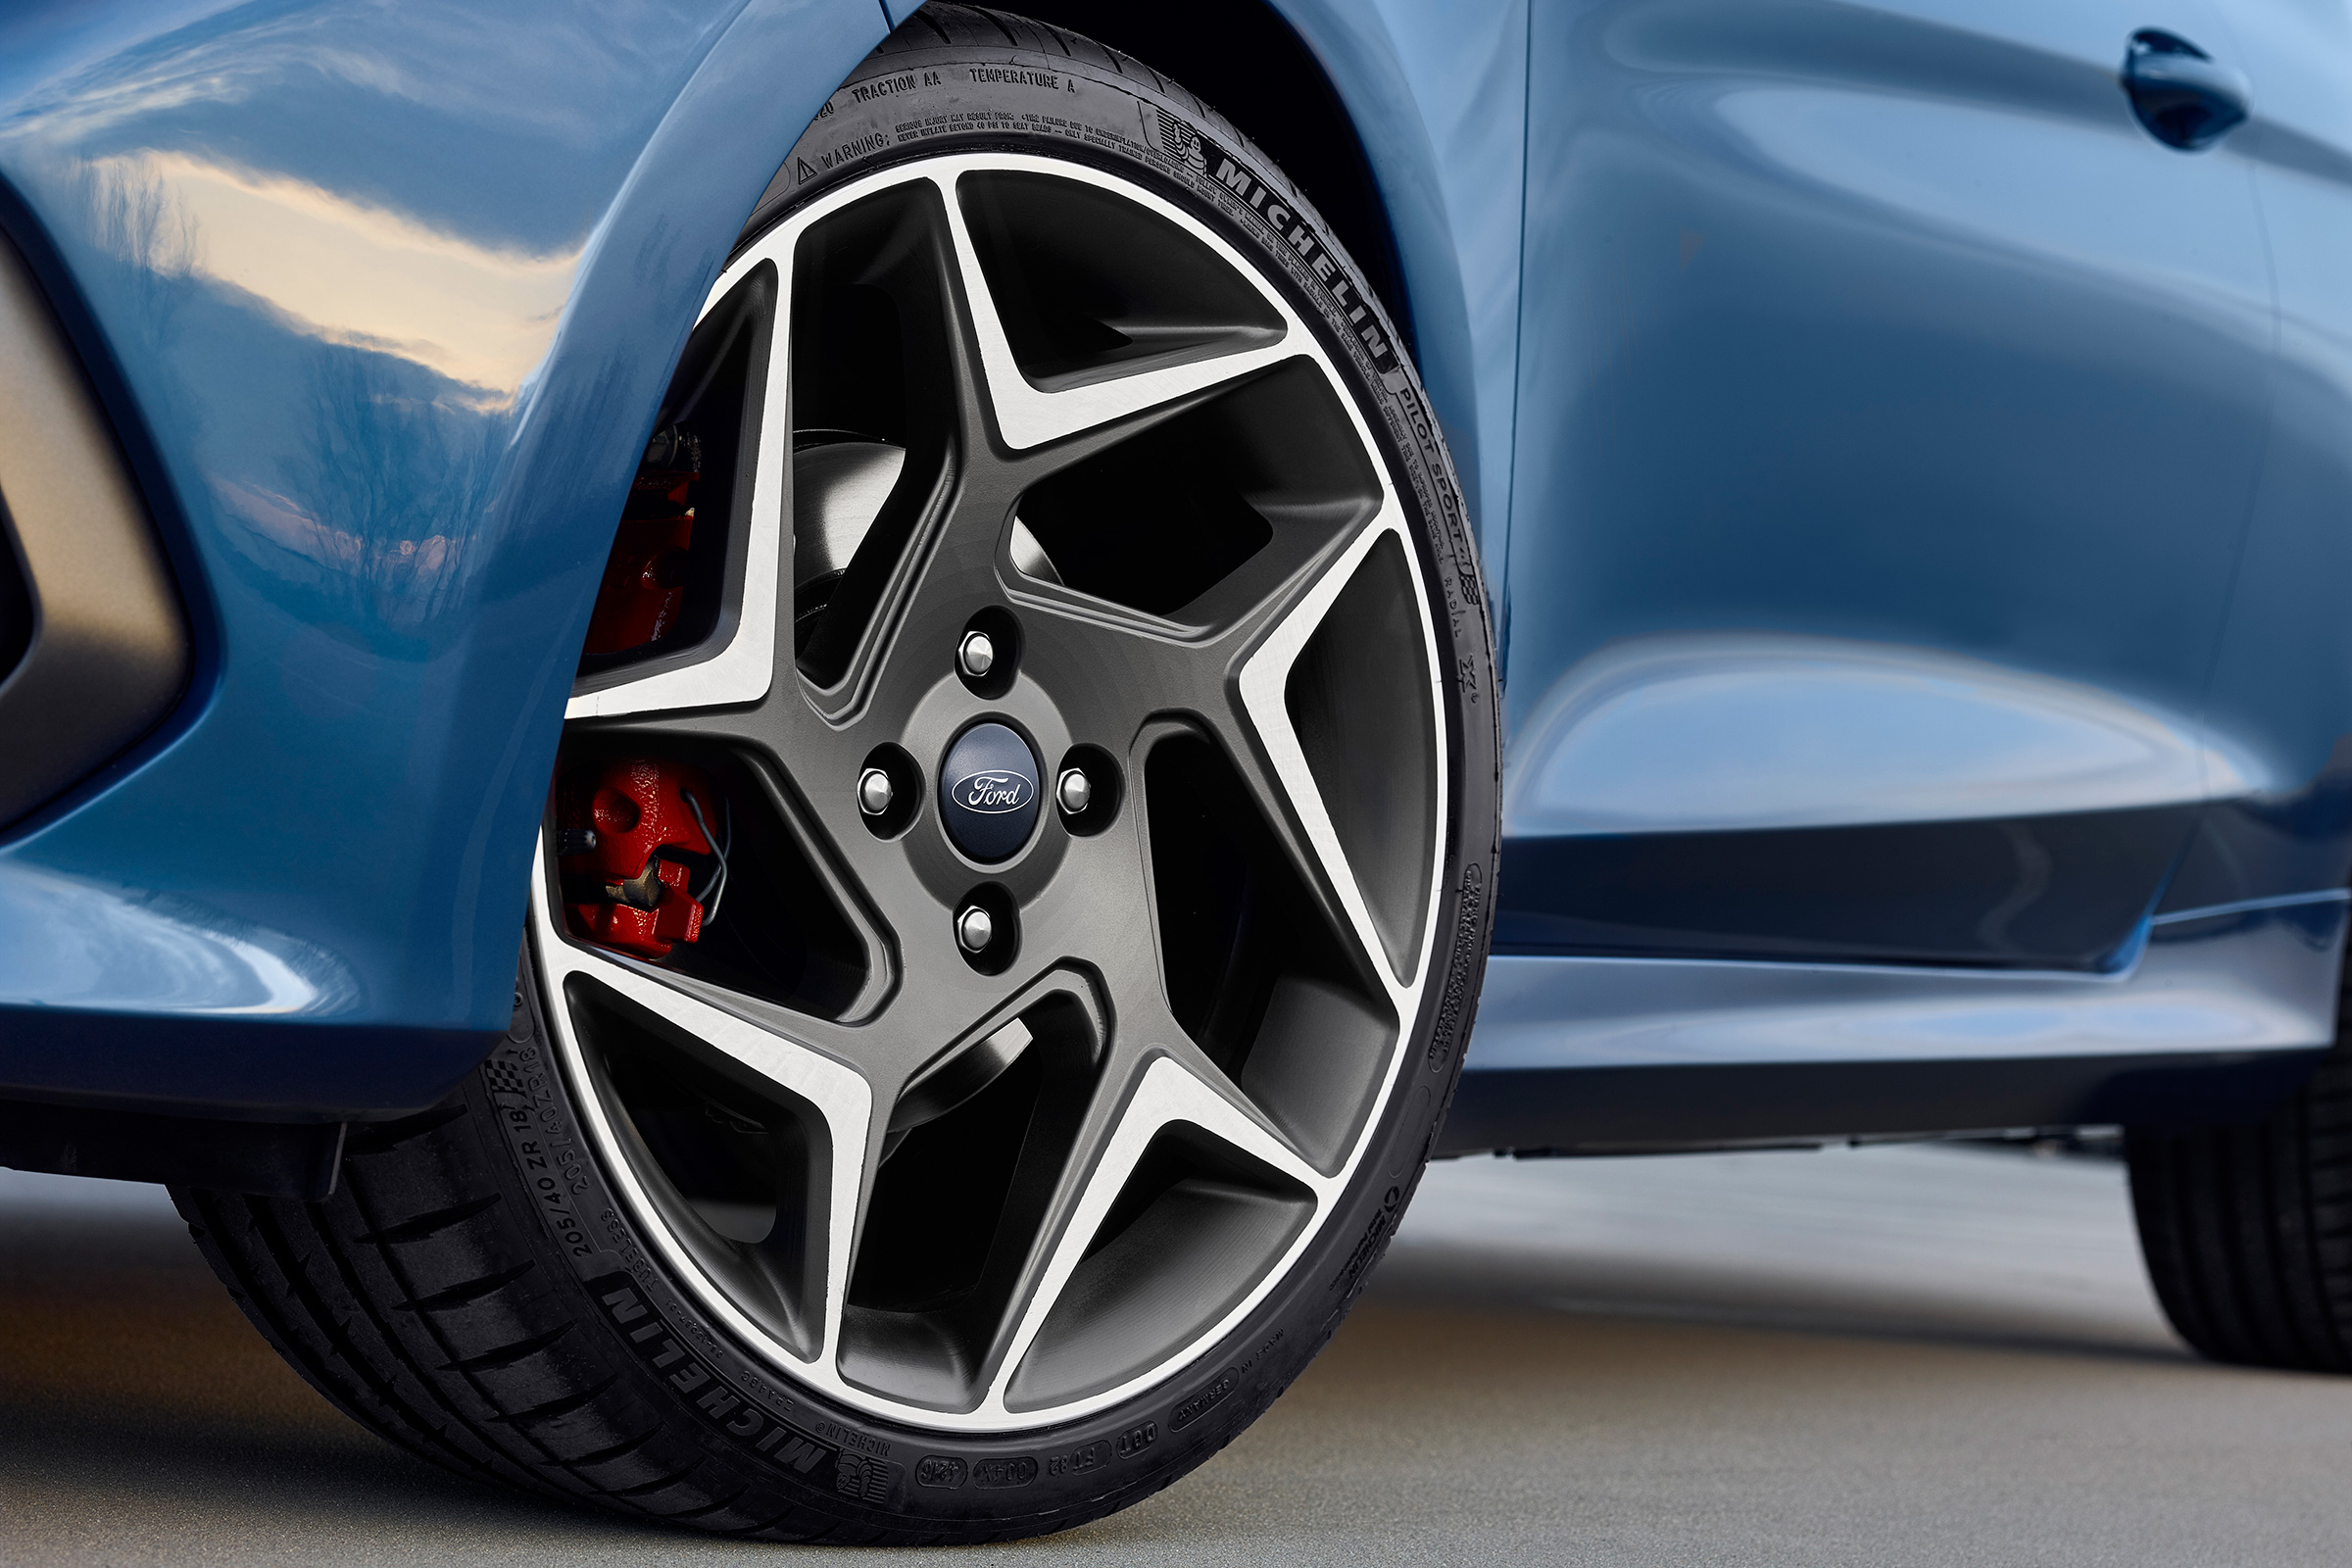 2018 Ford Fiesta ST Exterior View Wheel Profile (Photo 10 of 14)